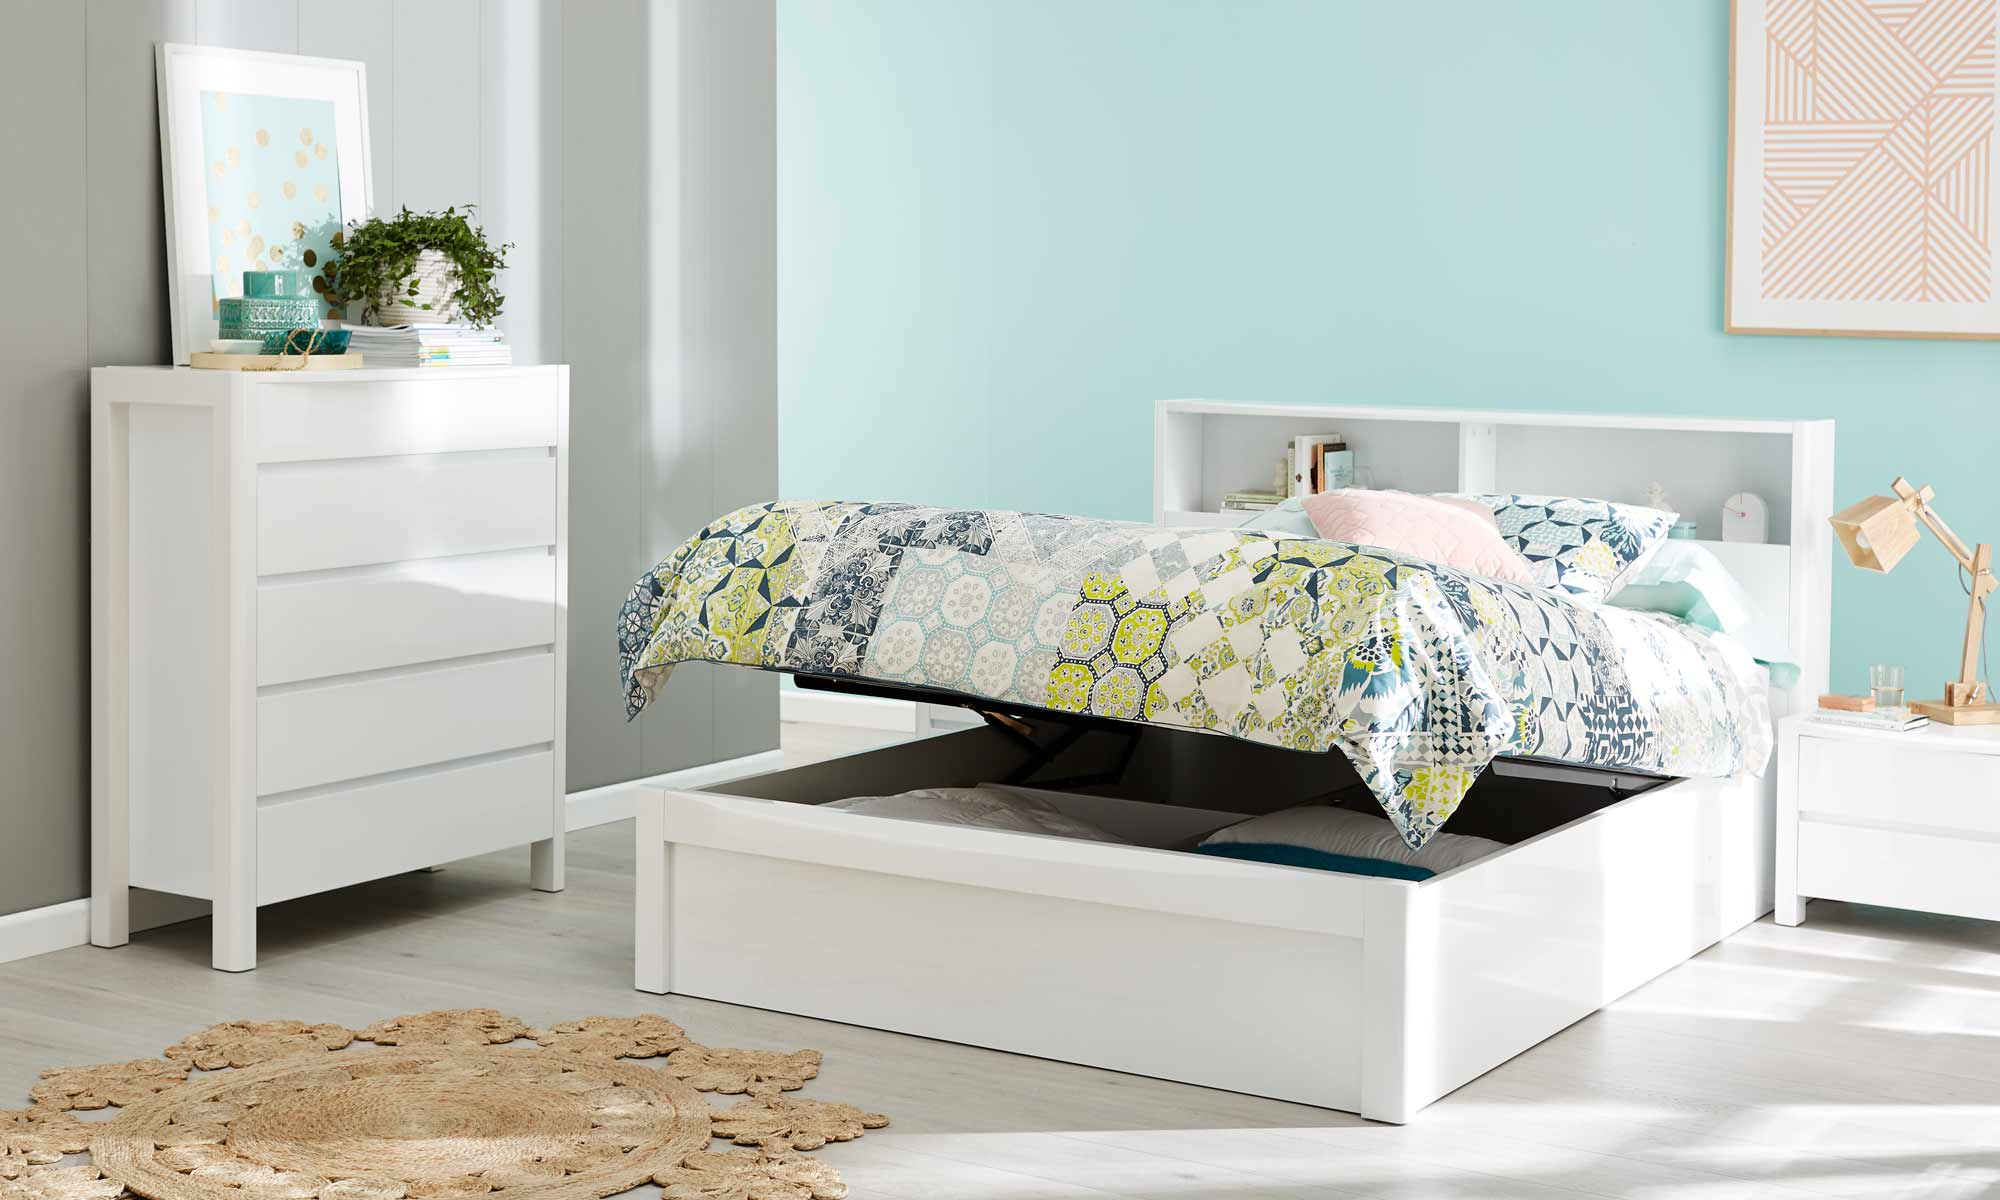 New York Bookend Bed Frame White Bedroom furniture